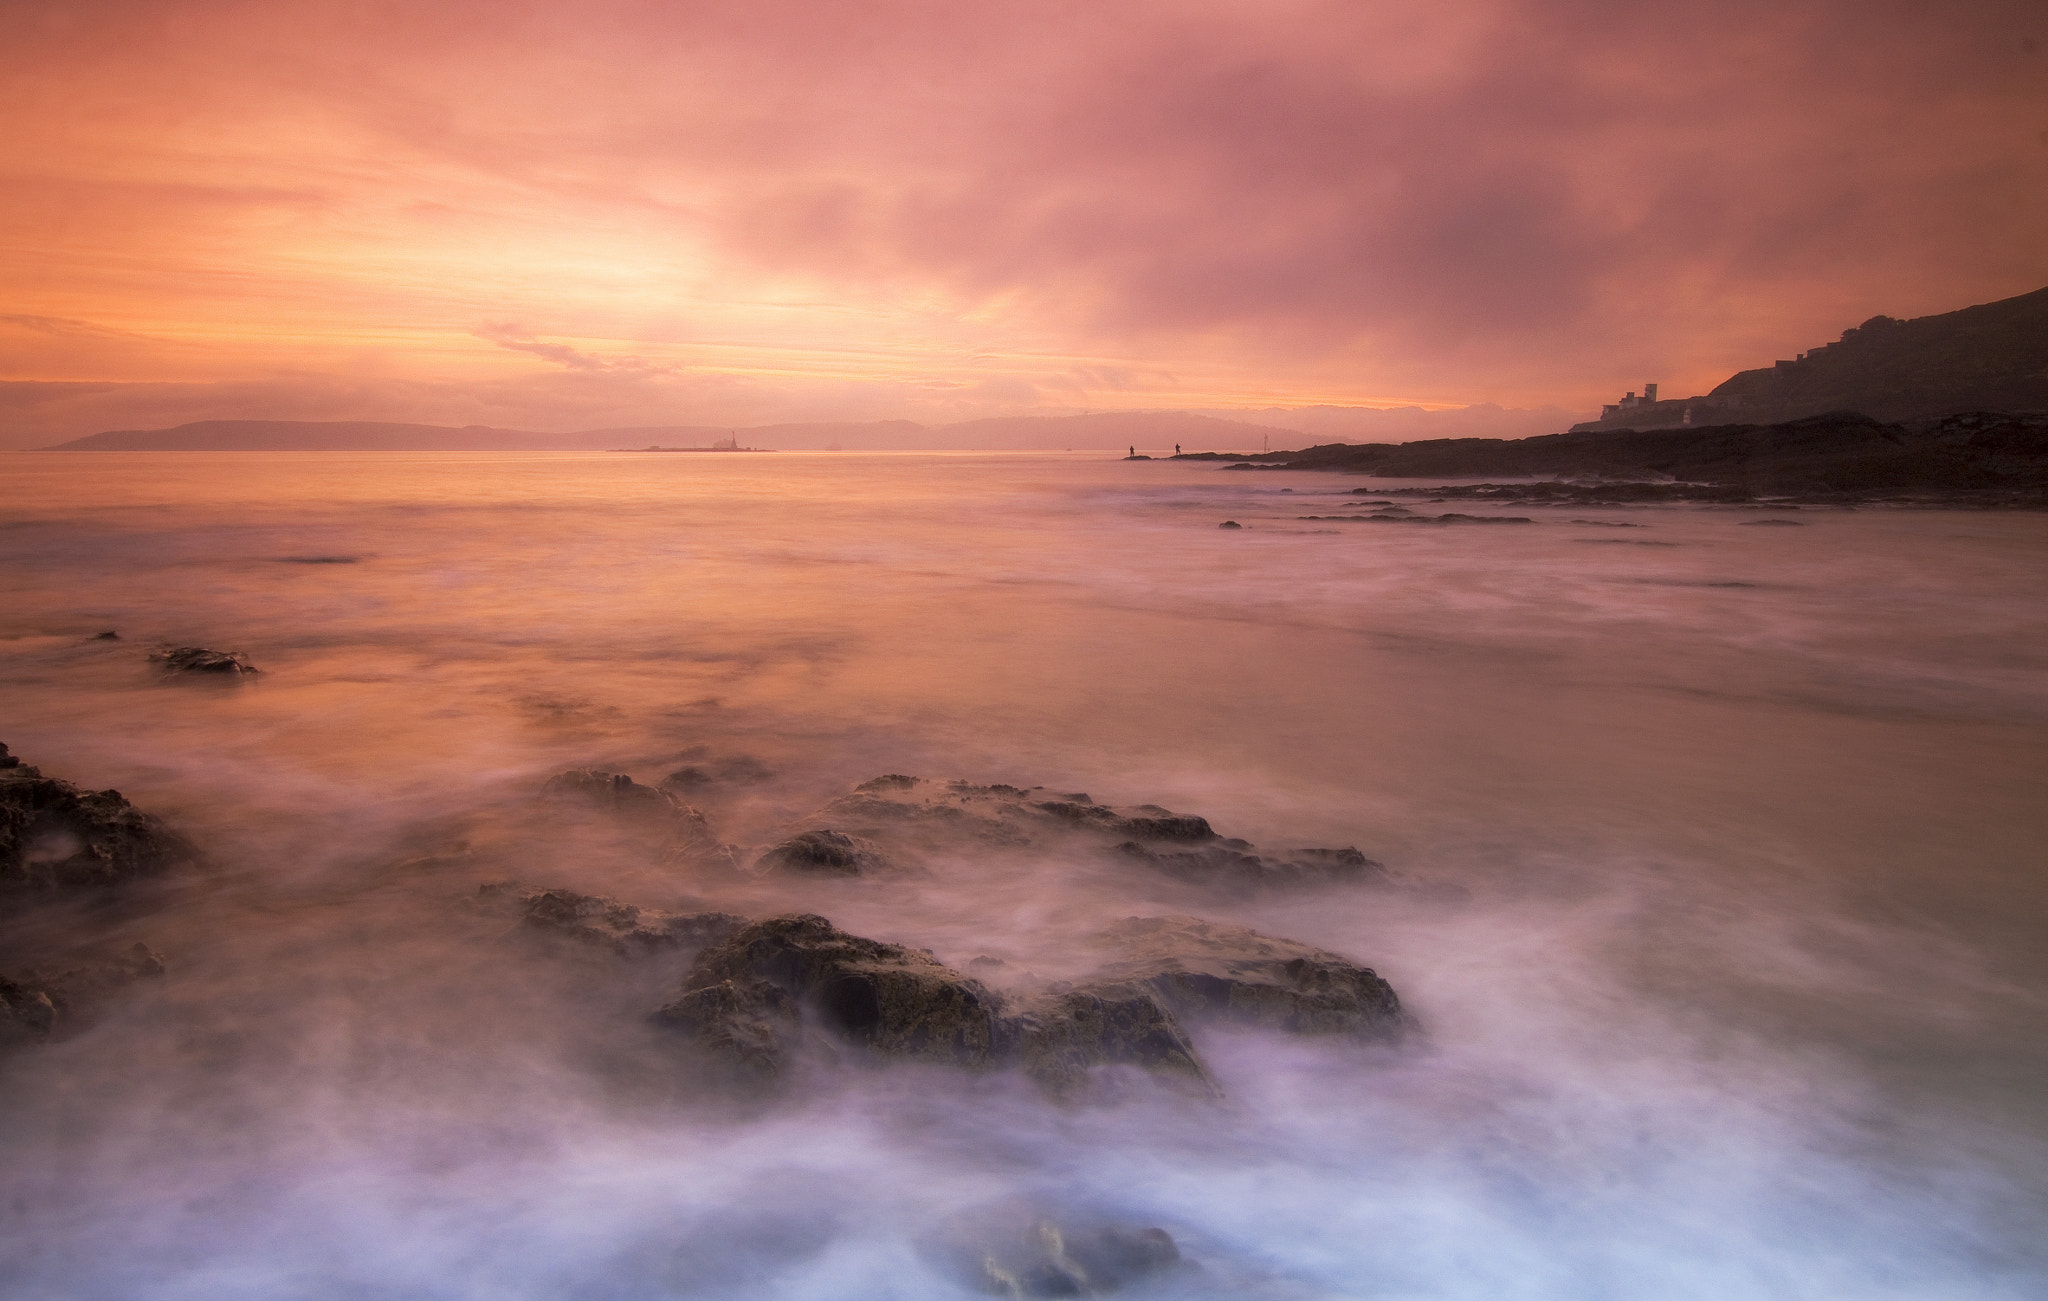 Photograph Mystical Tide by Chris Marshall on 500px